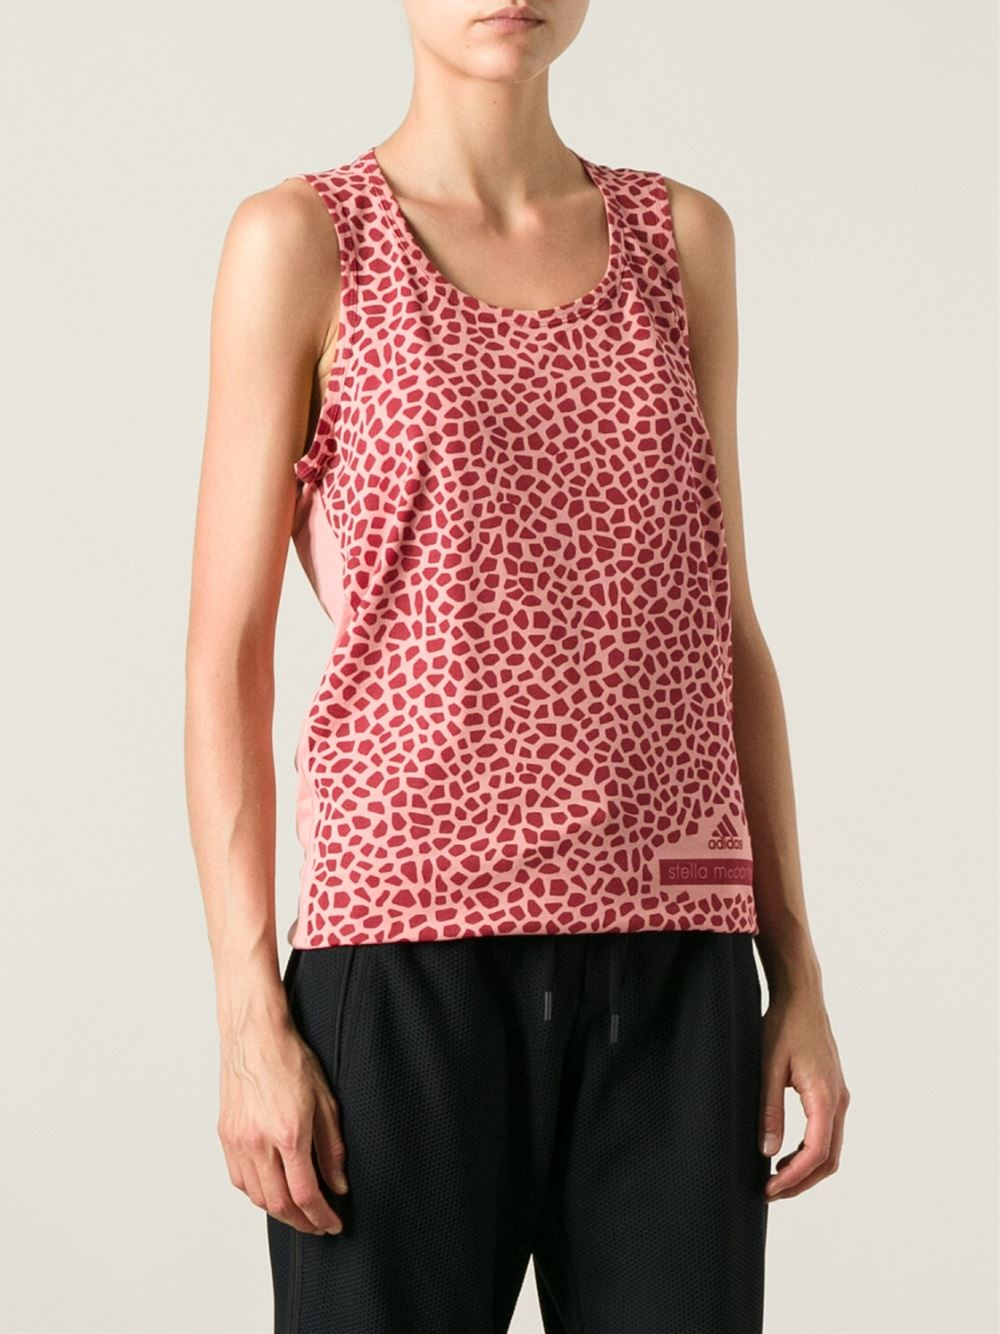 adidas by stella mccartney 39 run 39 tank top in red lyst. Black Bedroom Furniture Sets. Home Design Ideas